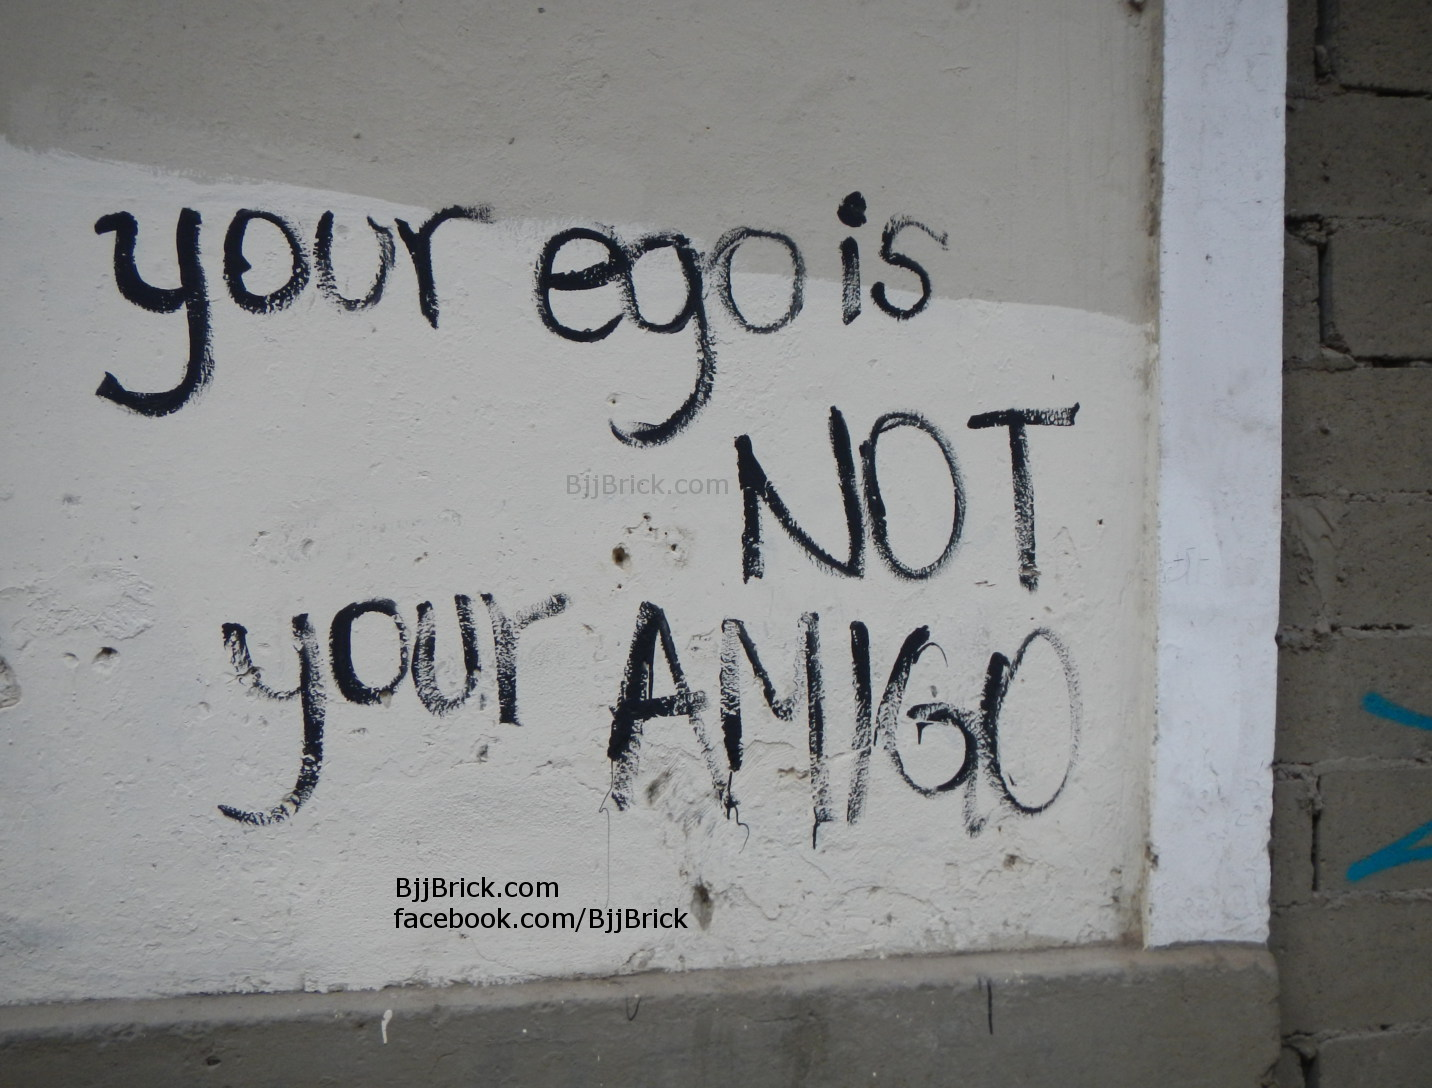 great line for BJJ. Your ego is not your amigo